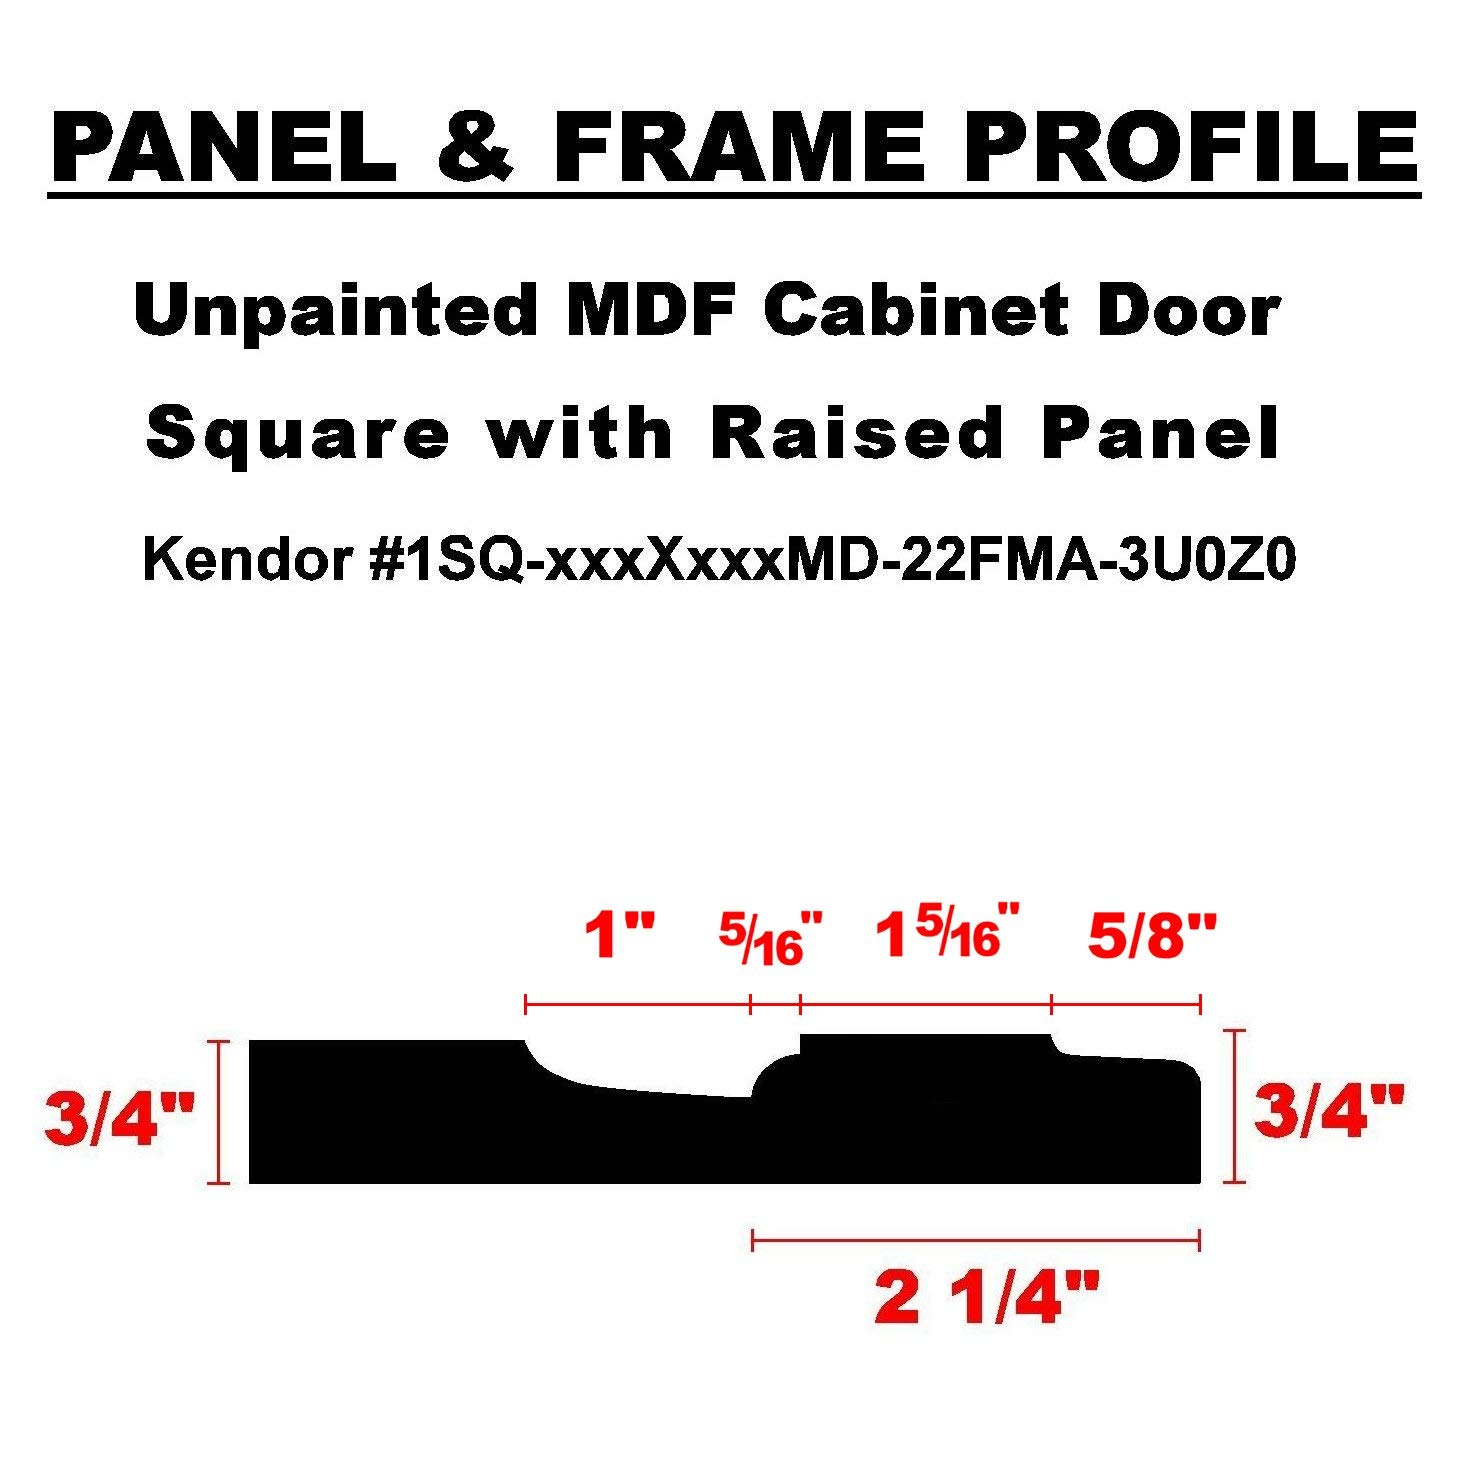 16H x 16W Kendor Unfinished MDF Cabinet Door Square with Raised Panel